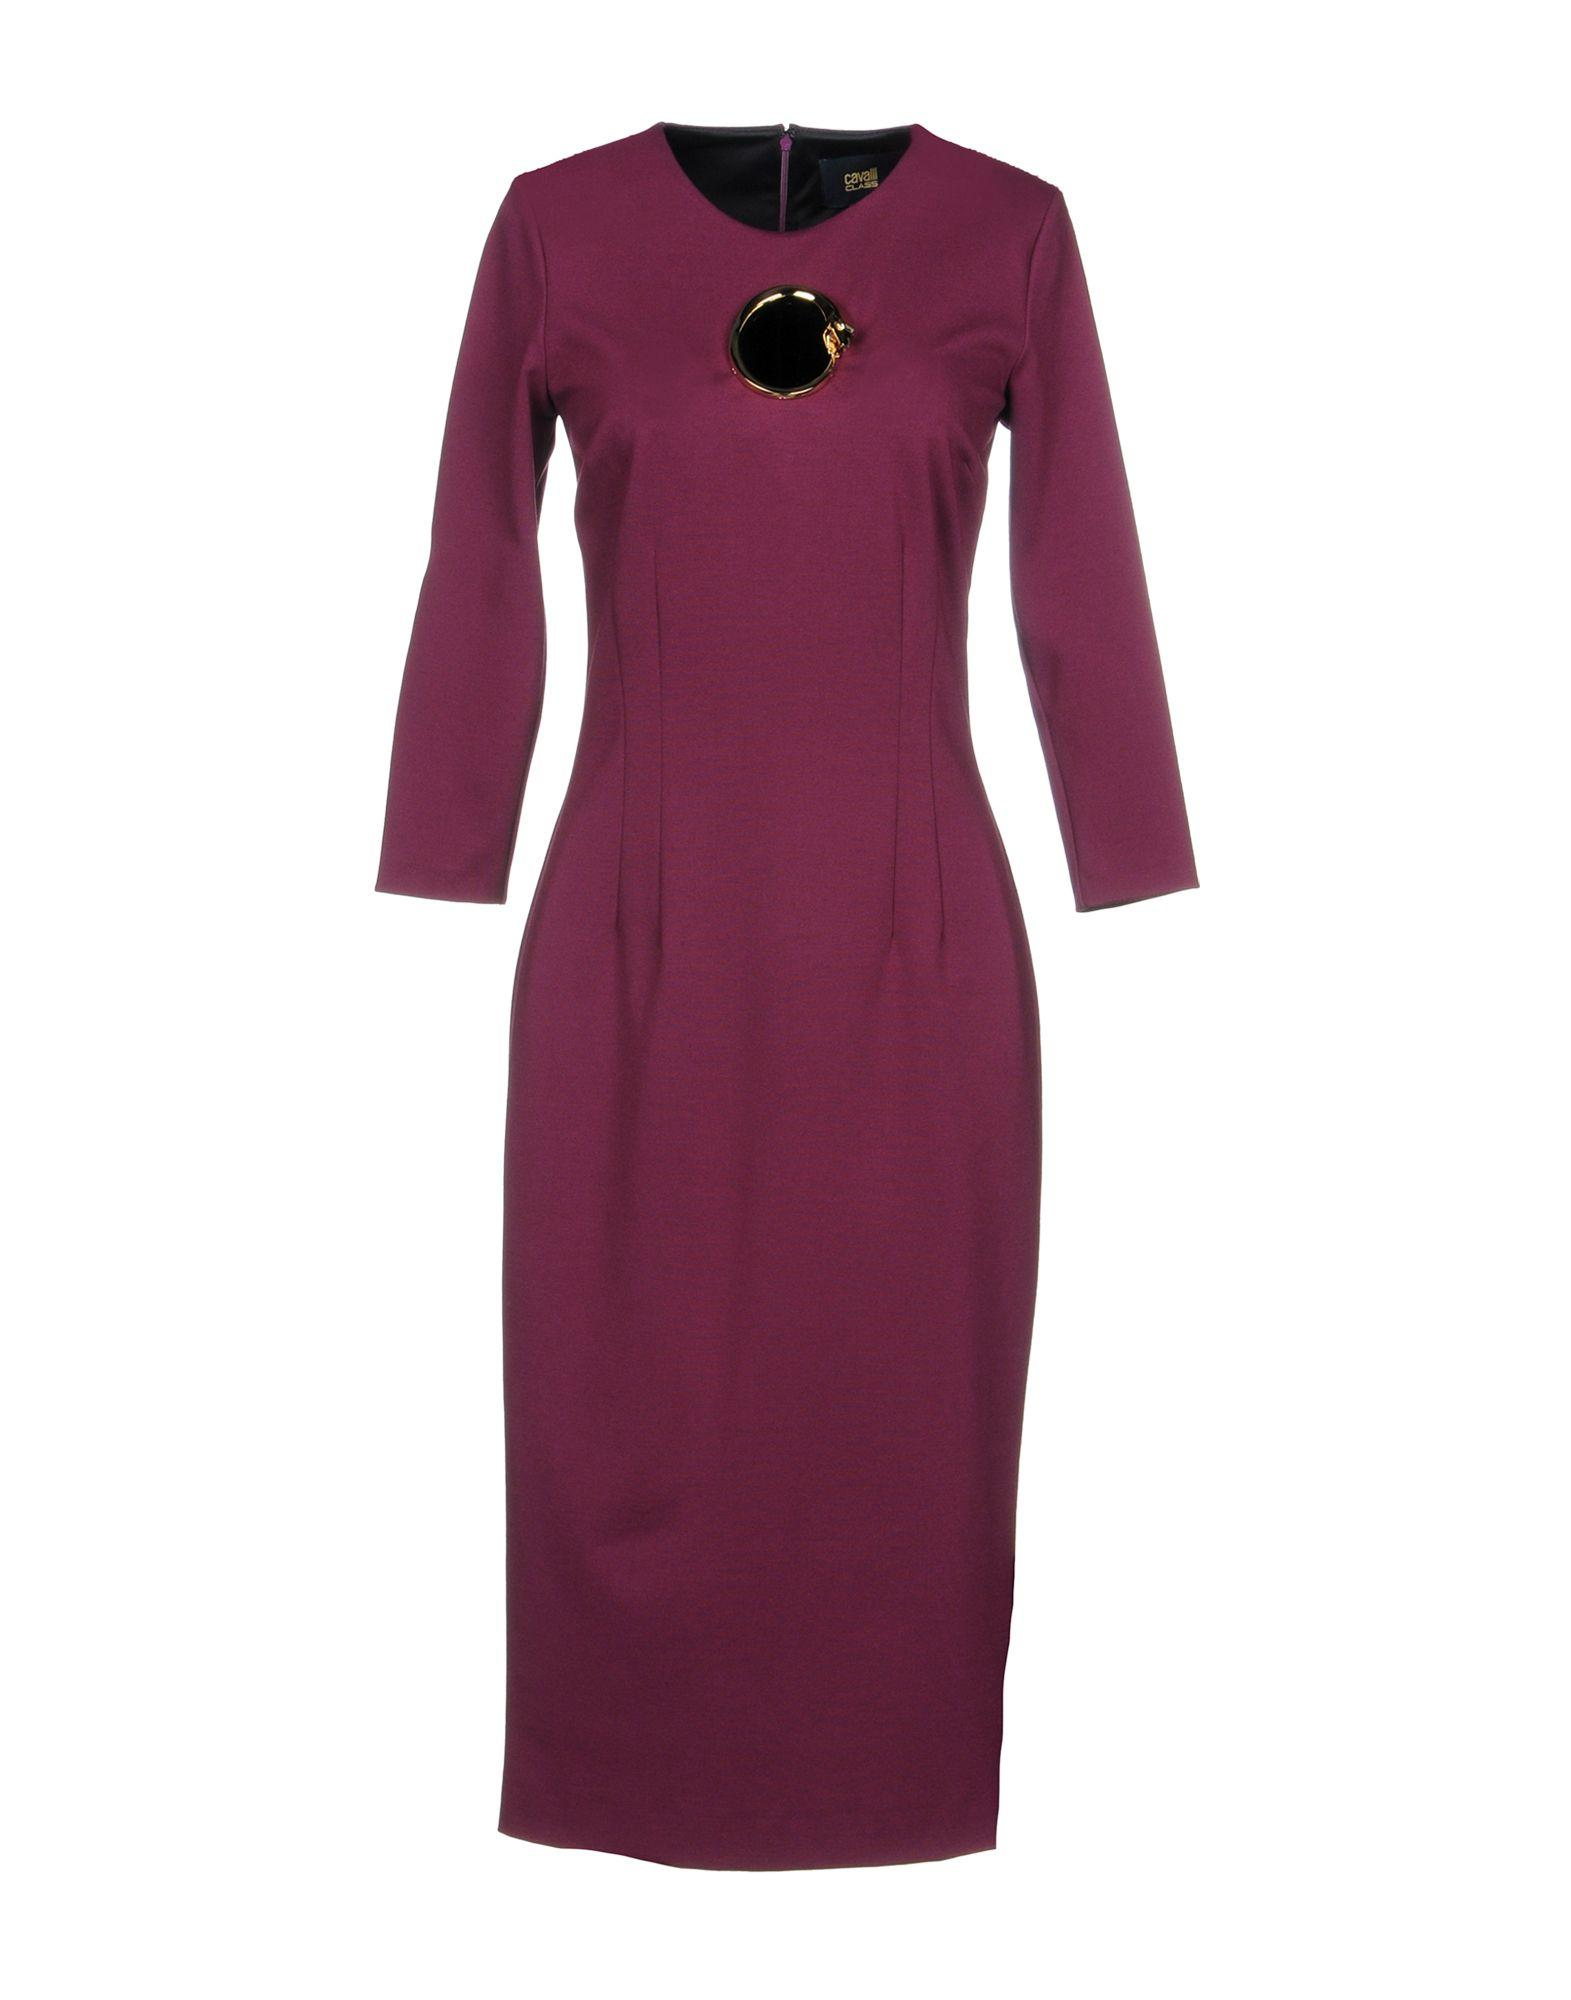 Class Roberto Cavalli Knee-length Dress In Garnet